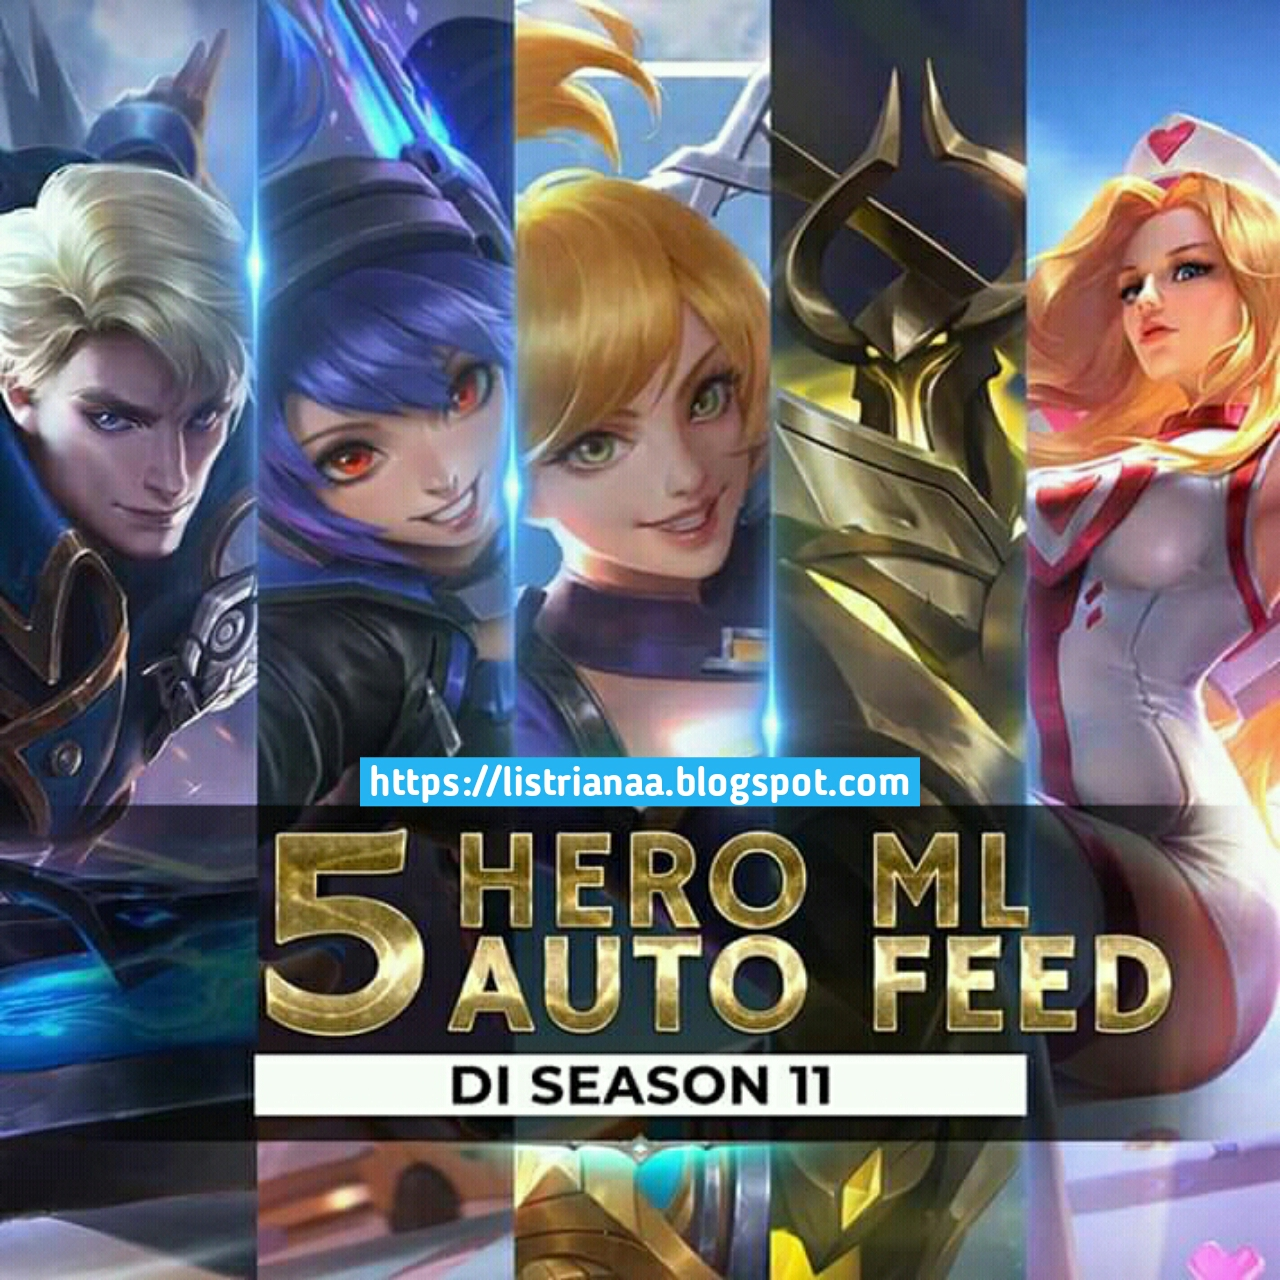 5 Hero Mobile Legends Auto Feed di Season 11+ 2